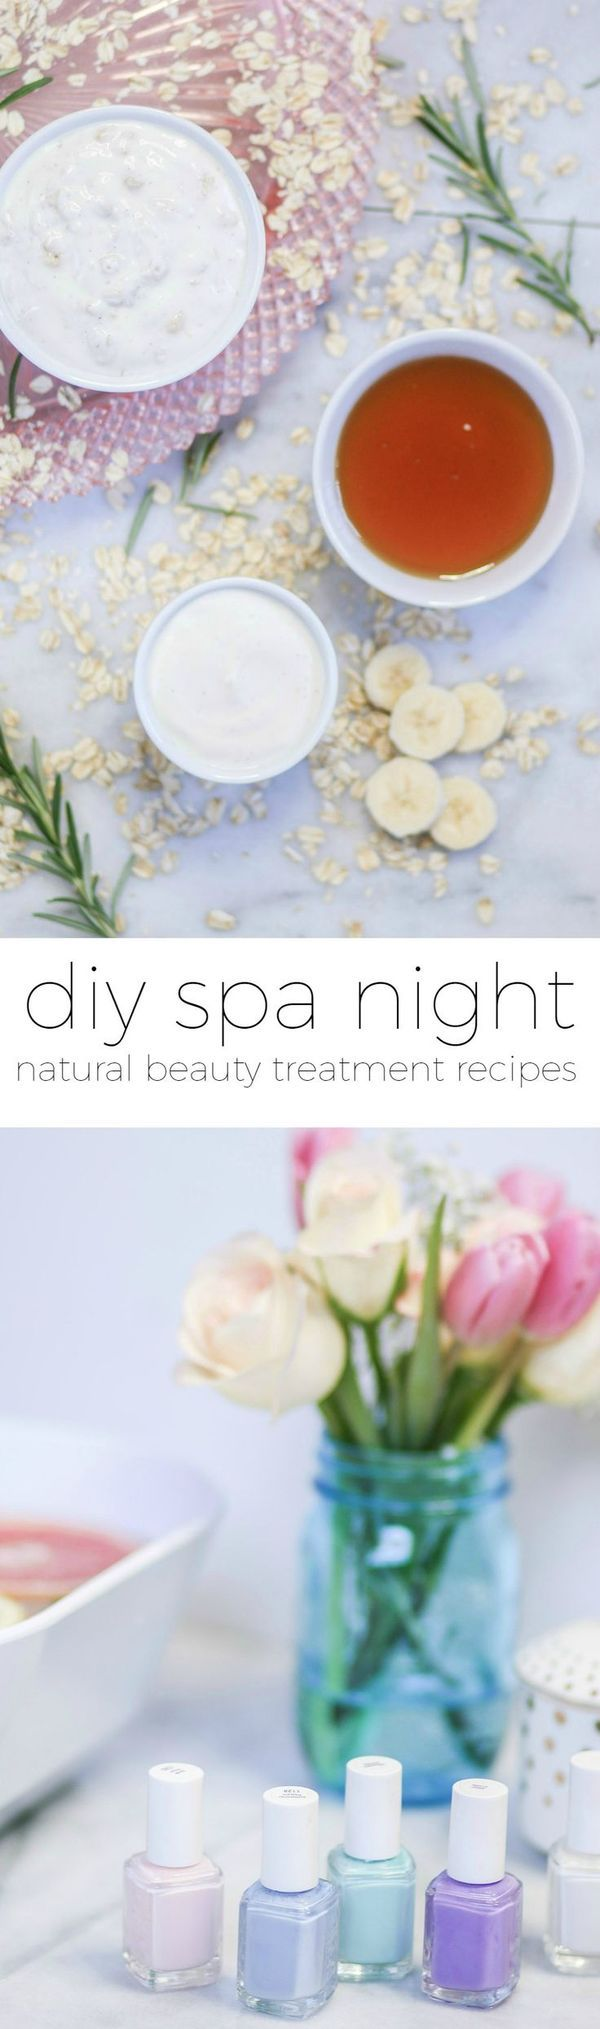 Learn how to create a luxurious DIY spa night at home with these easy DIY spa treatment recipes. You'll learn how to make a DIY lip scrub, moisturizing hair mask, soothing face mask, and chamomile hair rinse in this post. Plus, you'll learn how to easily whiten your teeth! Click through this pin to see all of the DIY recipes and skin care tips!